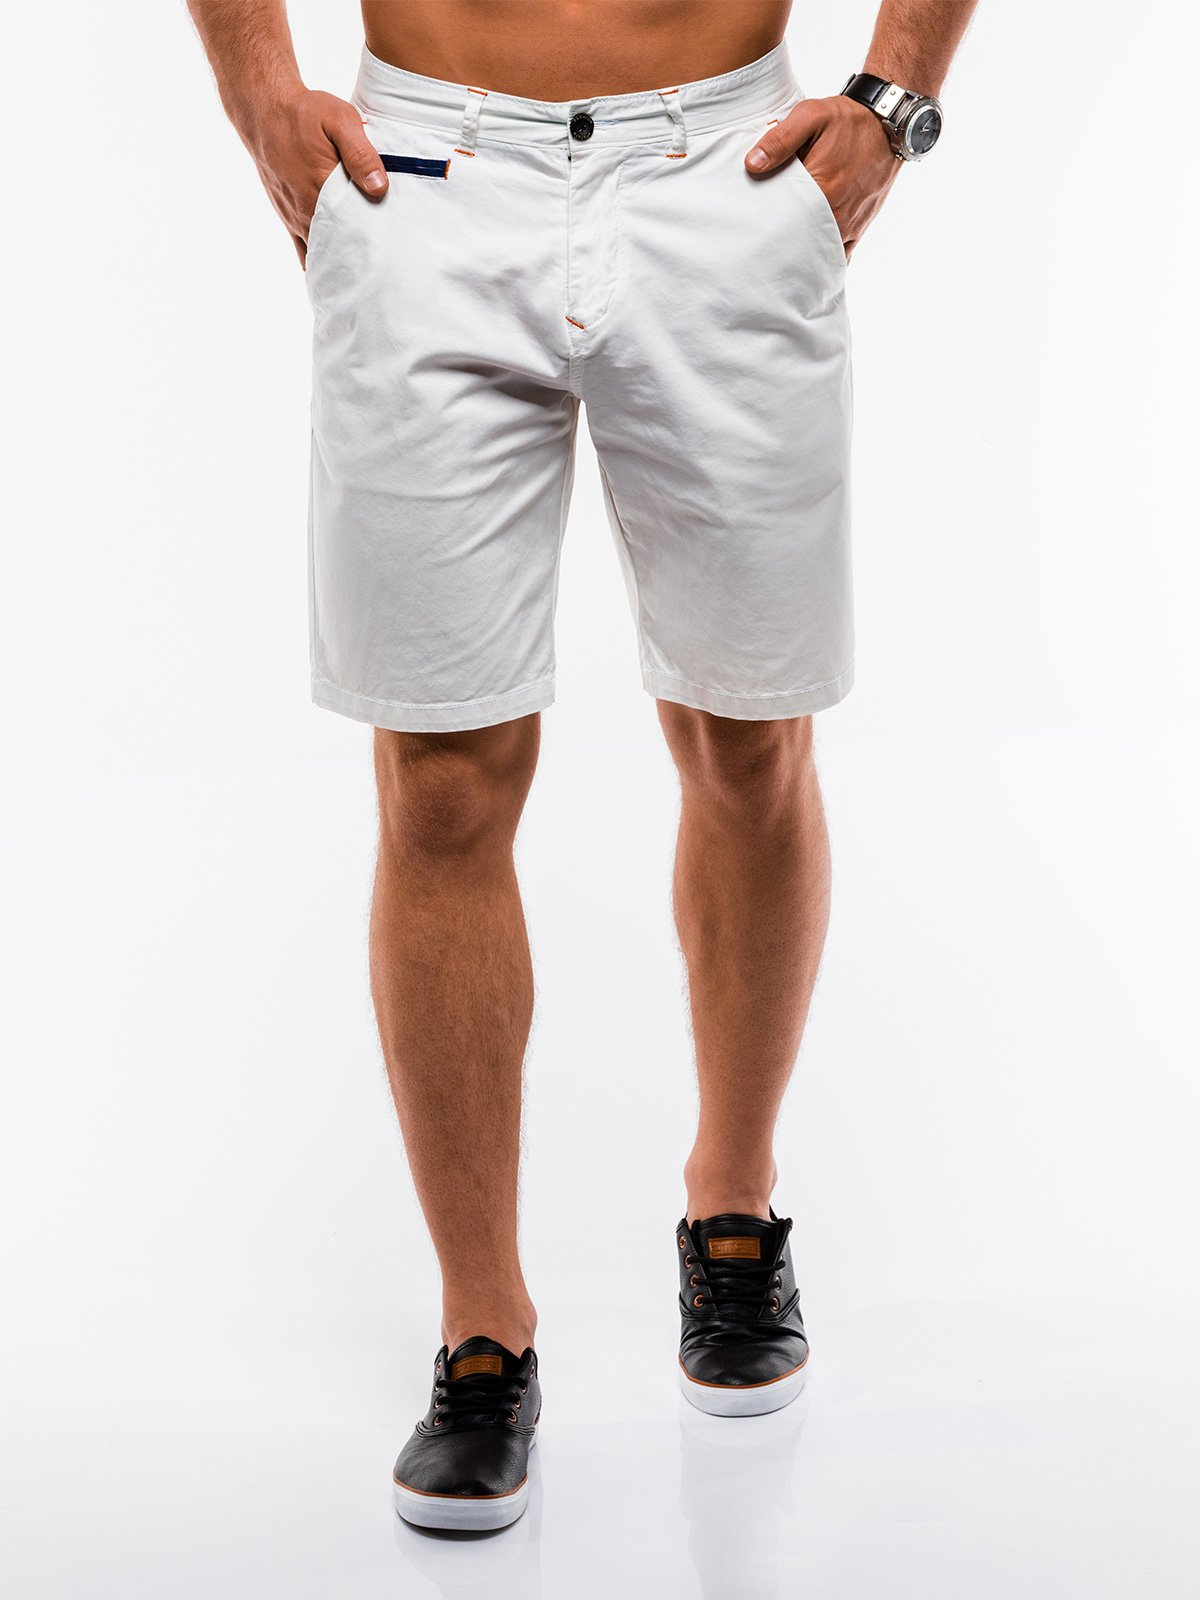 Ombre Clothing Men's chino shorts W194